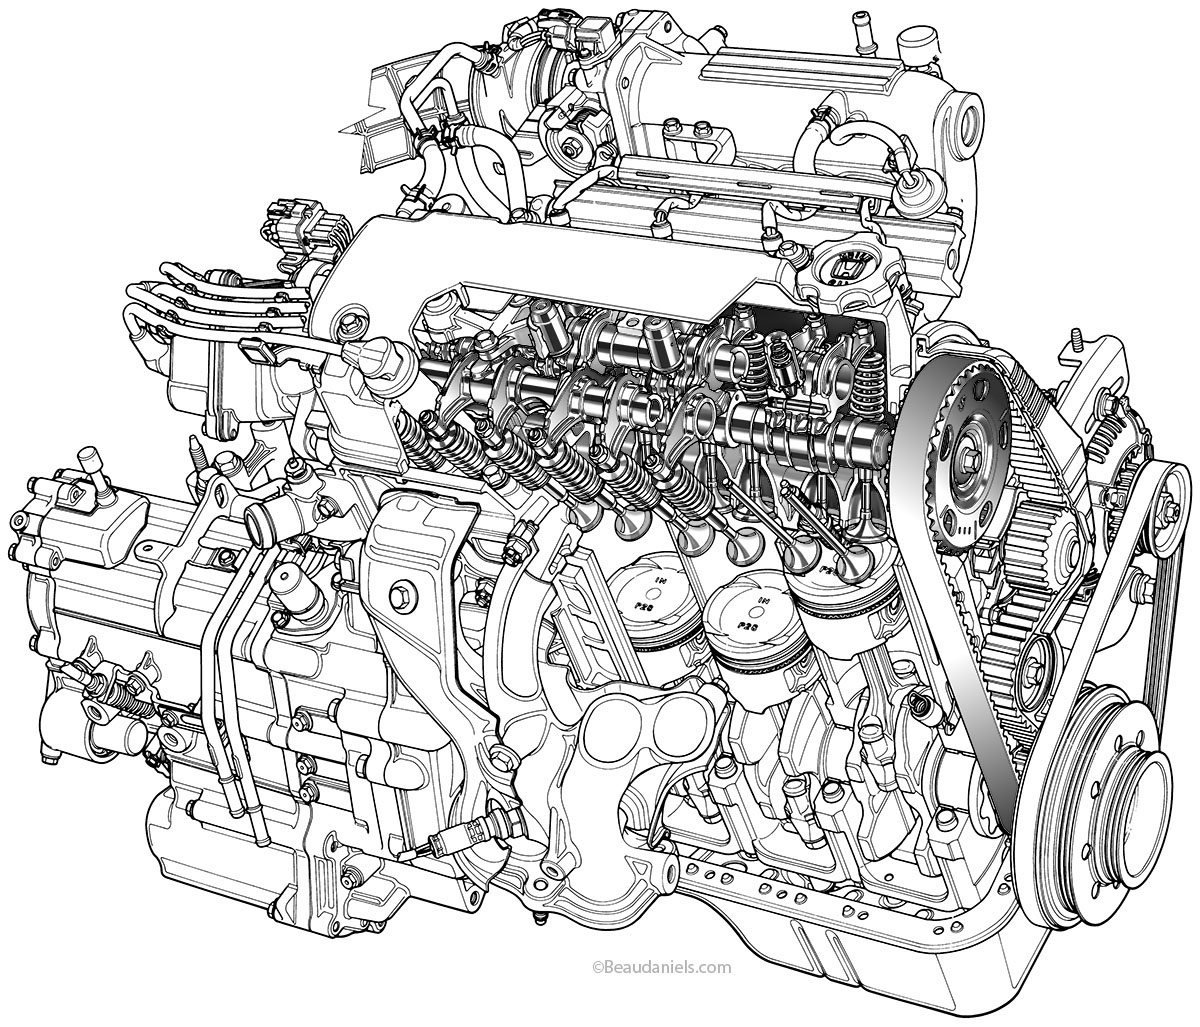 Engines Drawing at GetDrawings.com | Free for personal use Engines ...